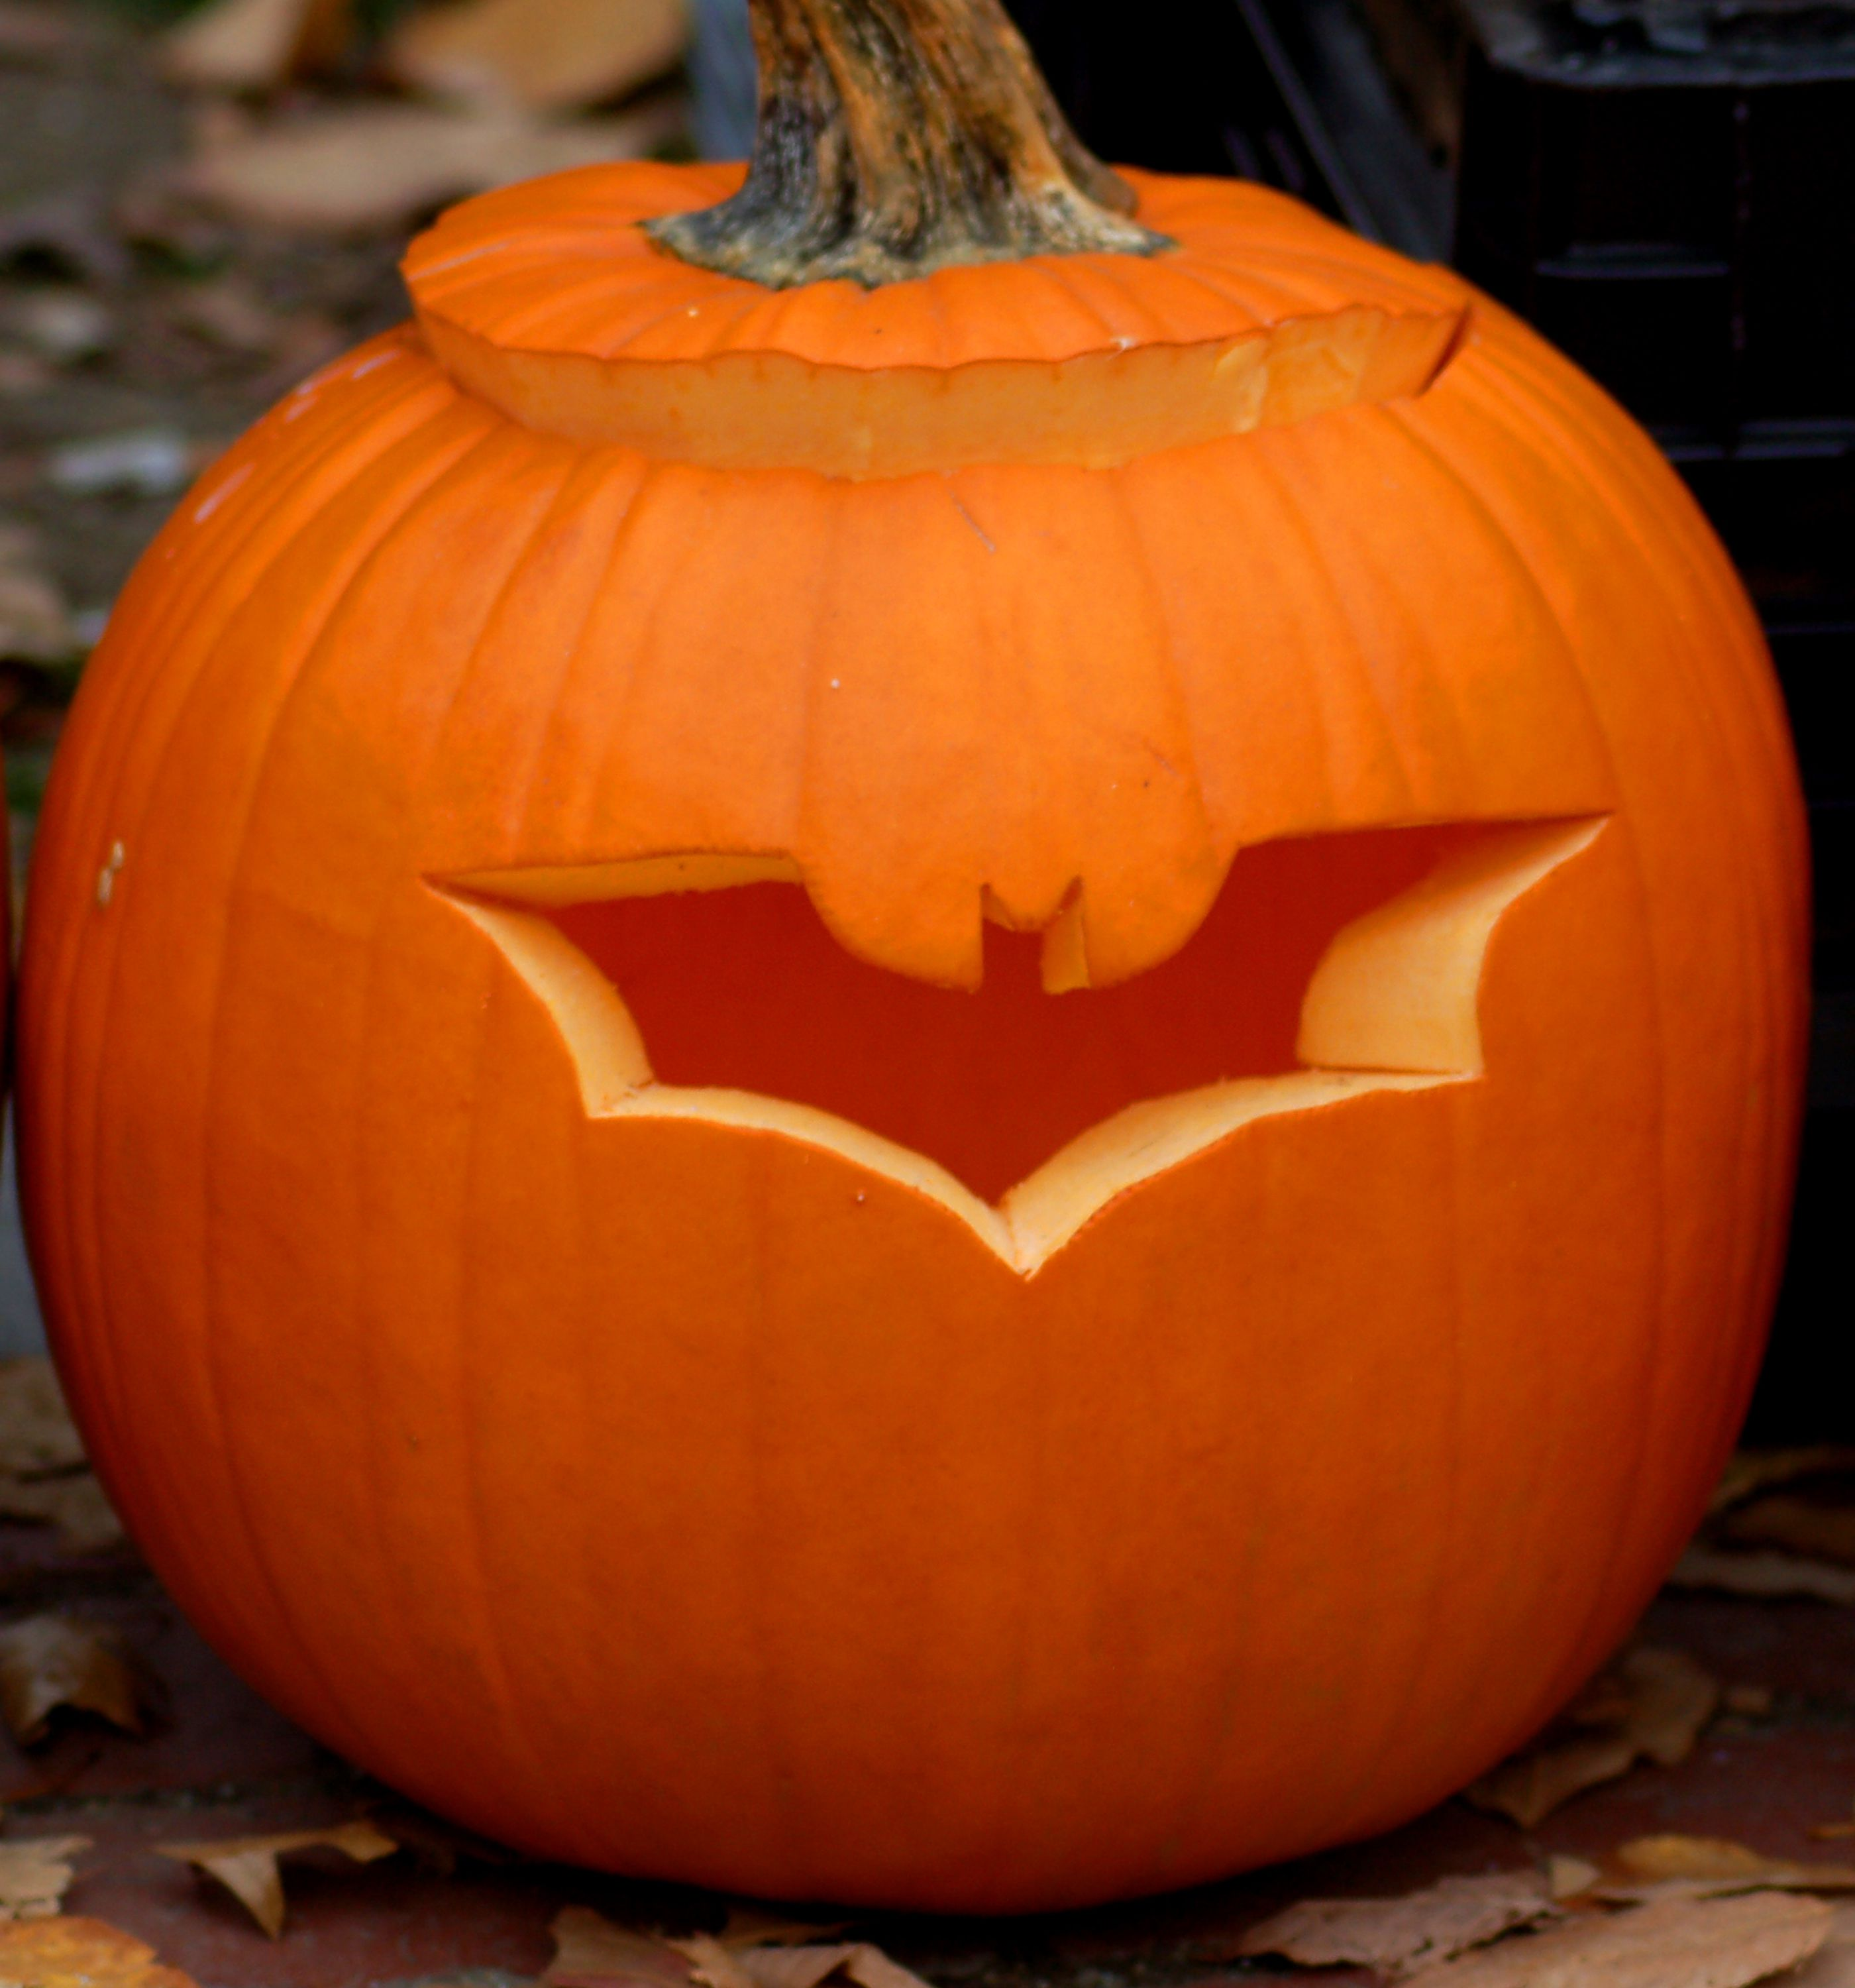 Pumpkin for Carving Ideas